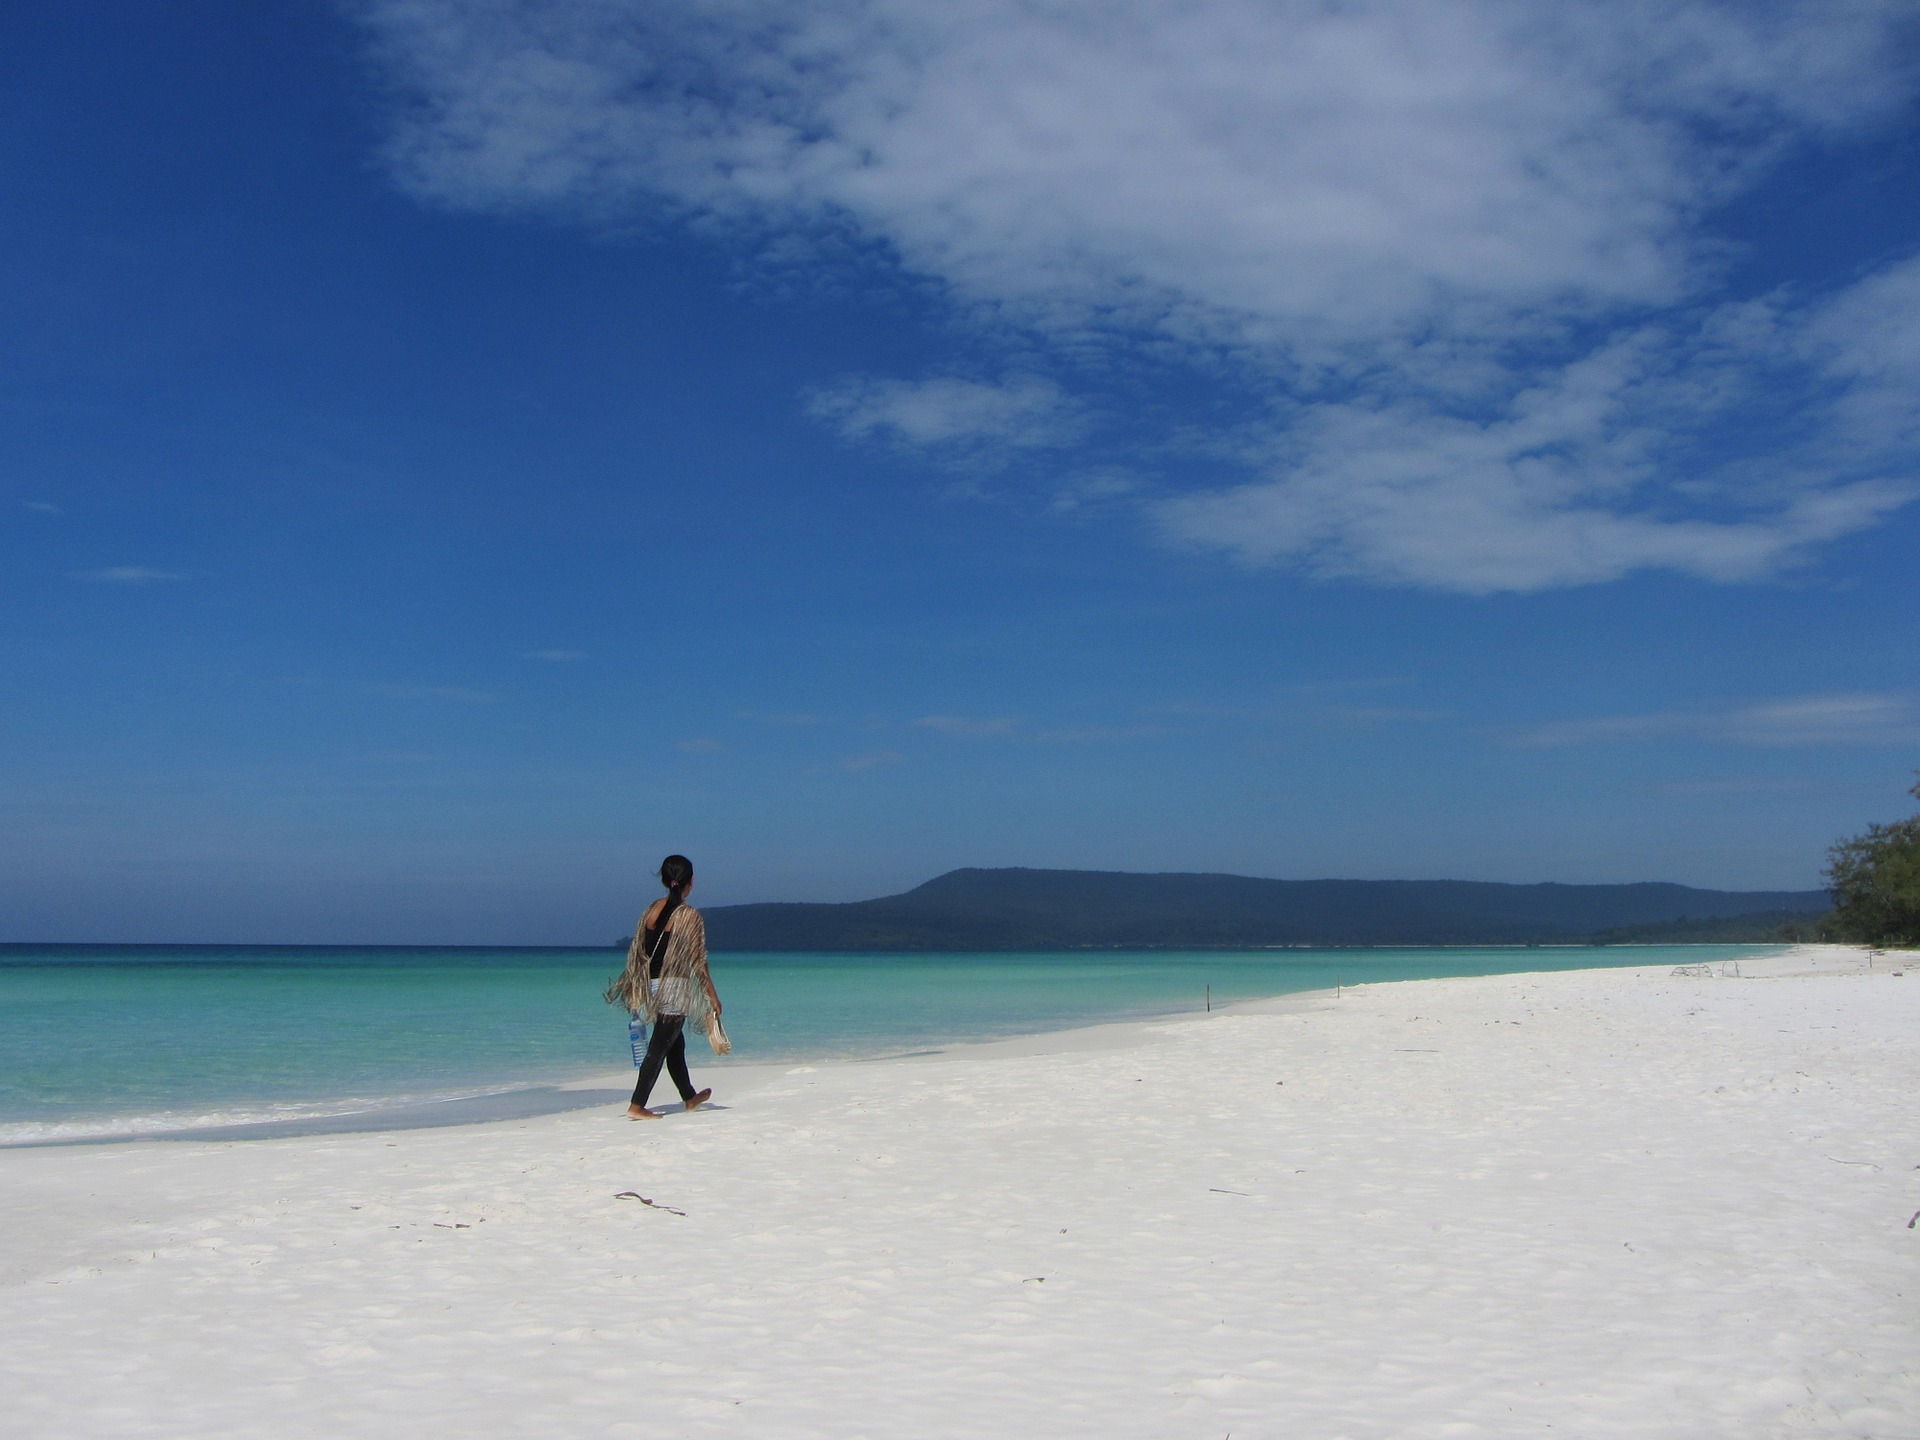 things to do in cambodia - Koh Rong night life